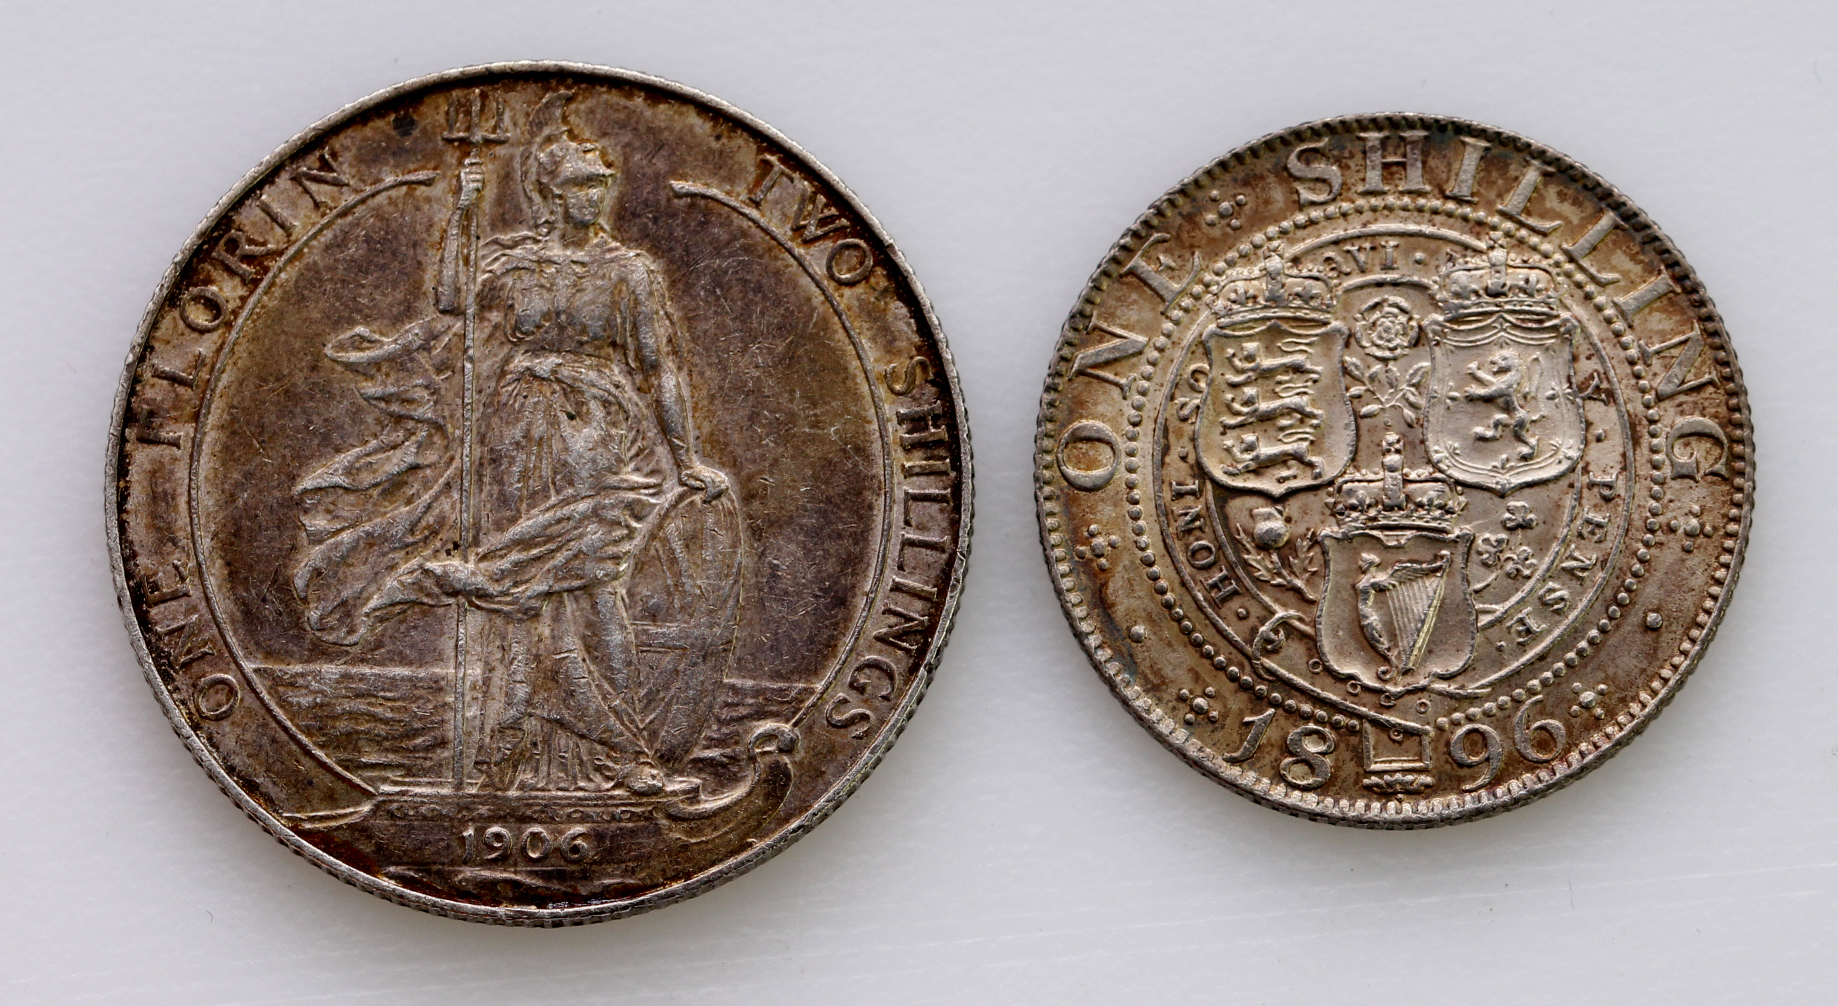 Shilling 1896 iridescent EF, and Florin 1906 VF - Image 2 of 2